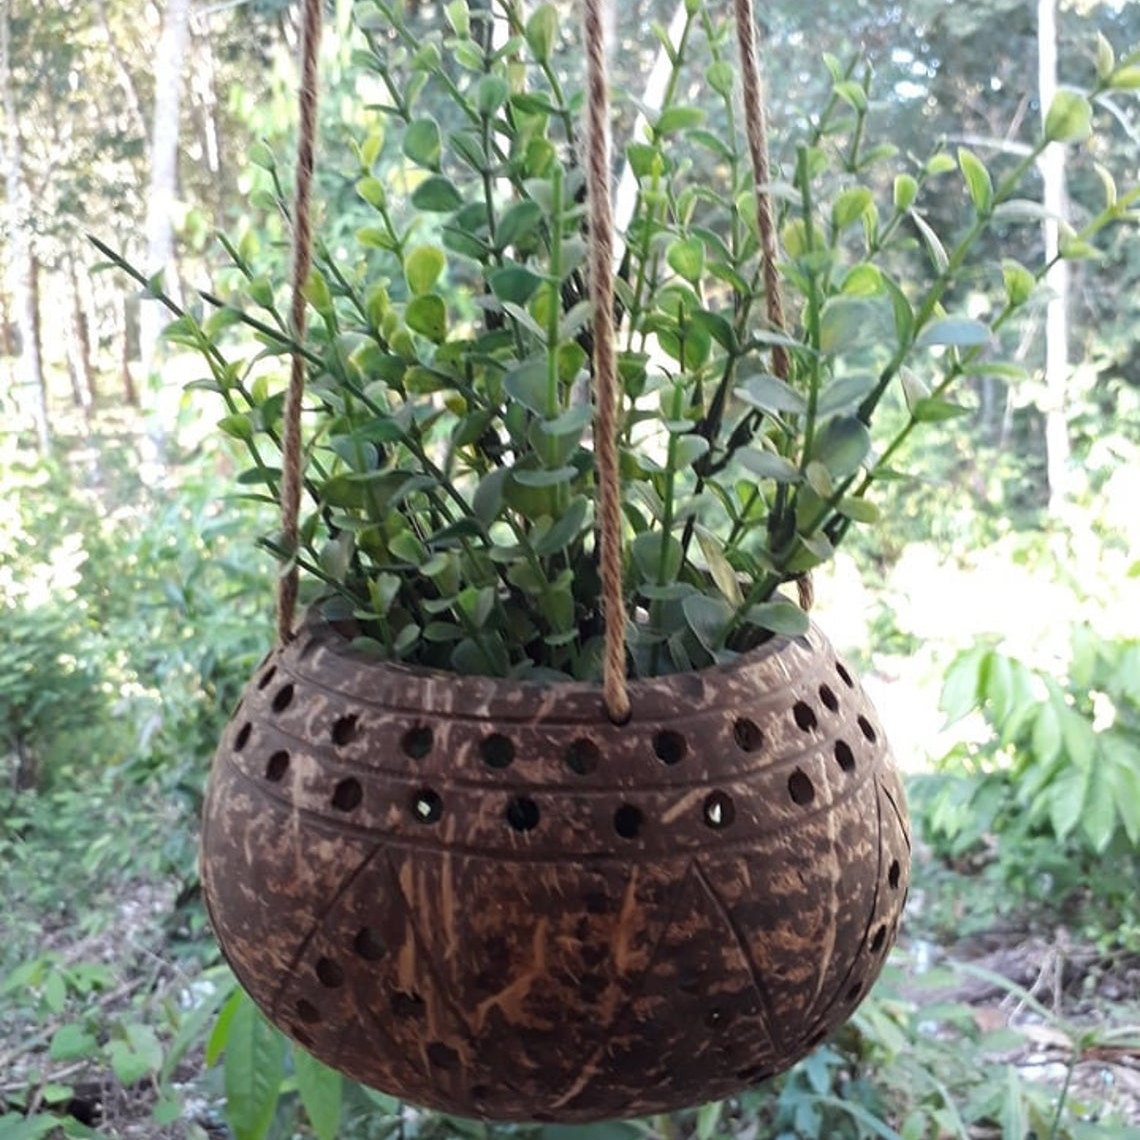 Hanging Coconut Shell Flower Pot